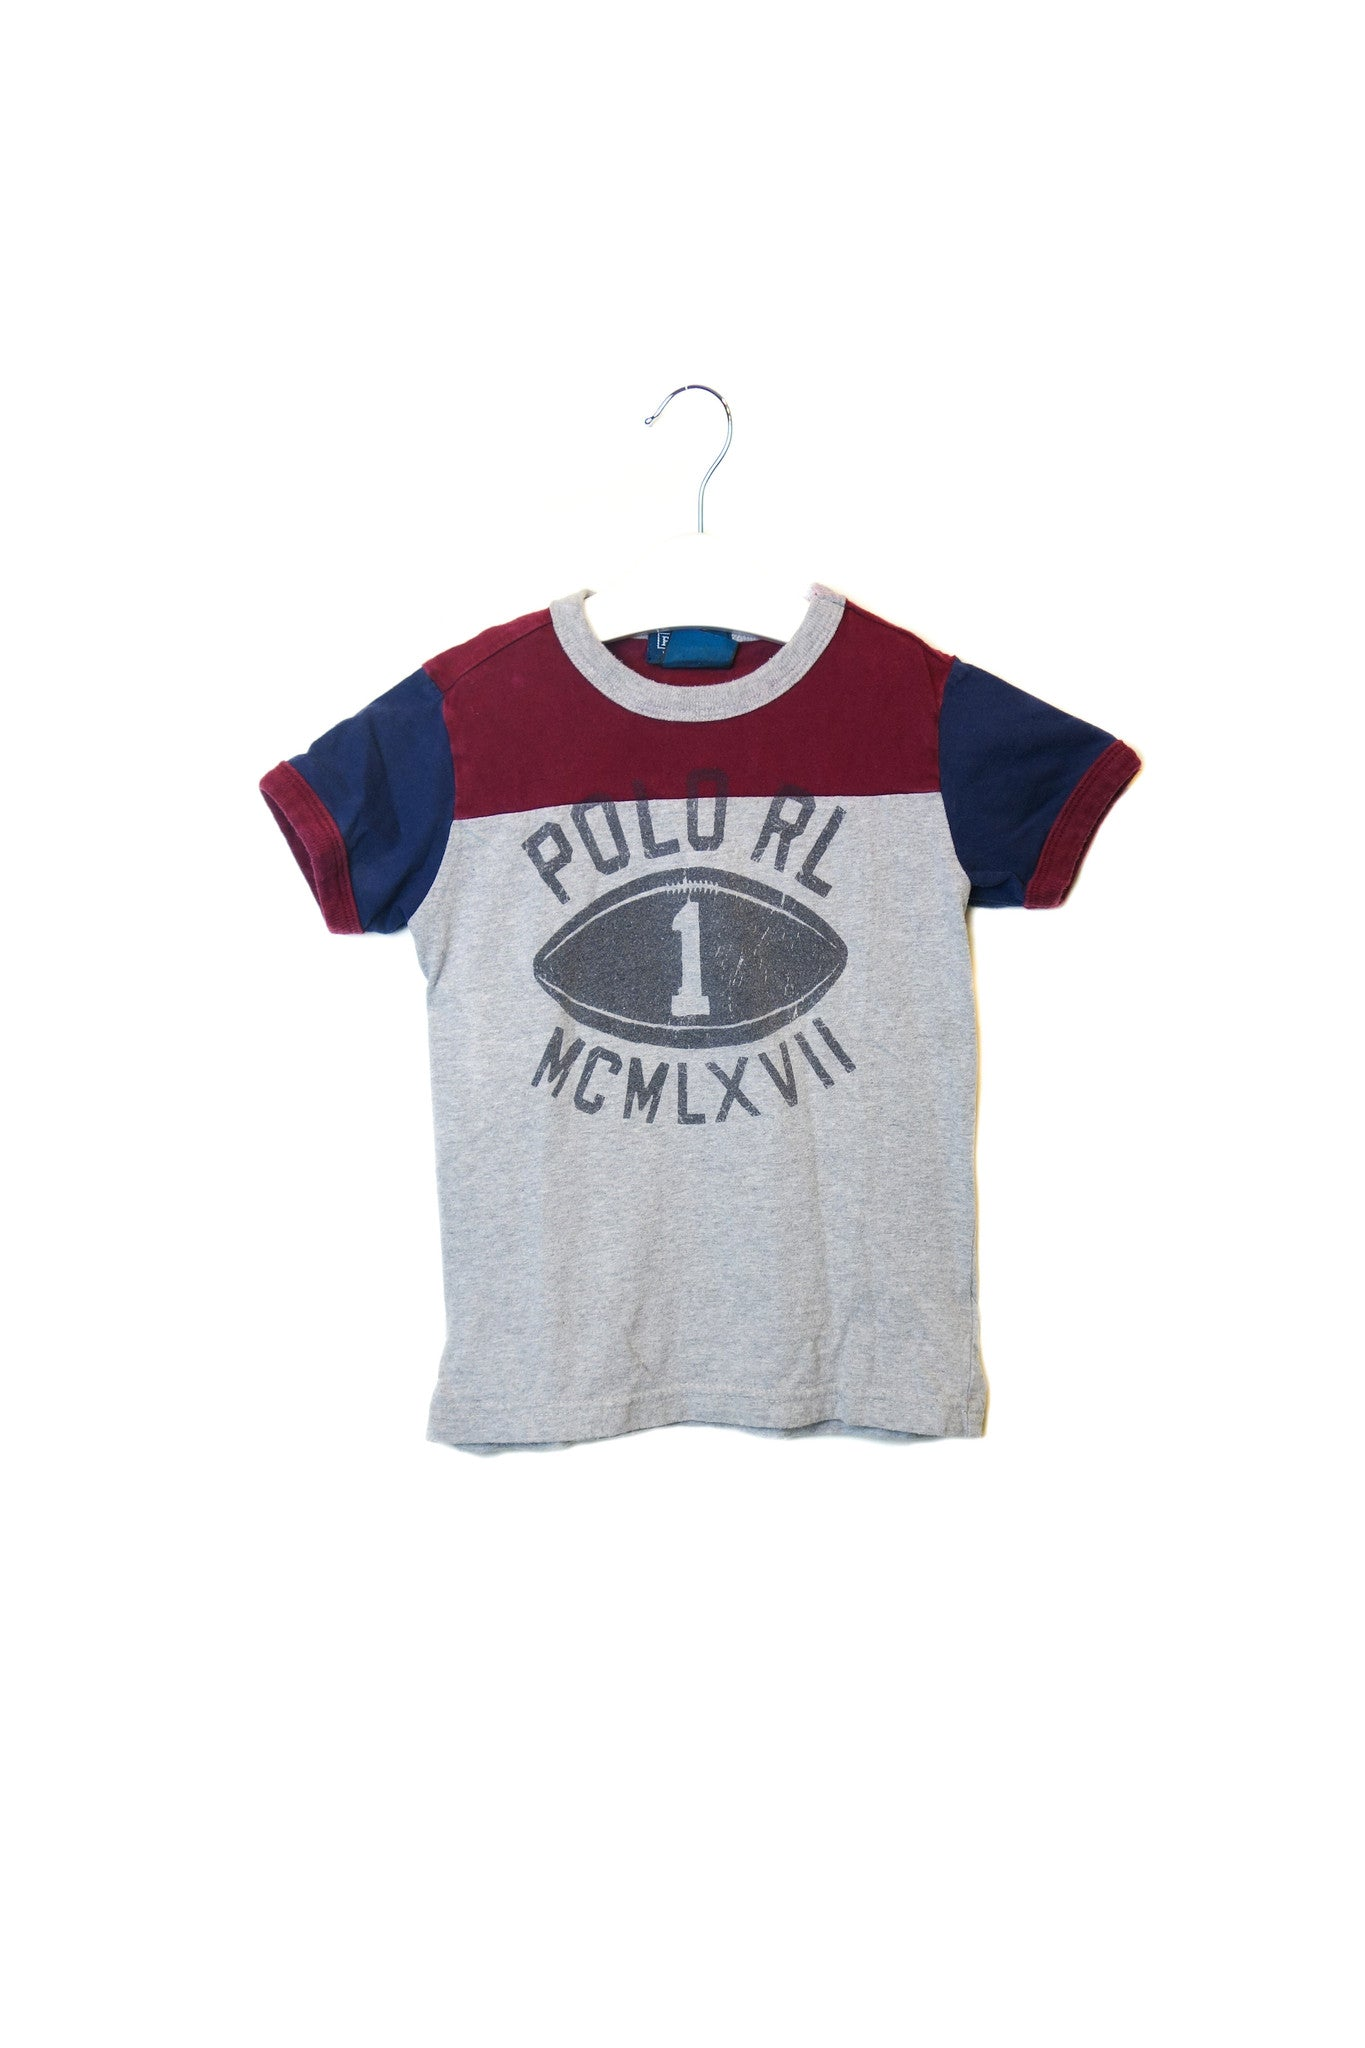 10001781 Polo Ralph Lauren Kids~T-Shirt 3T at Retykle